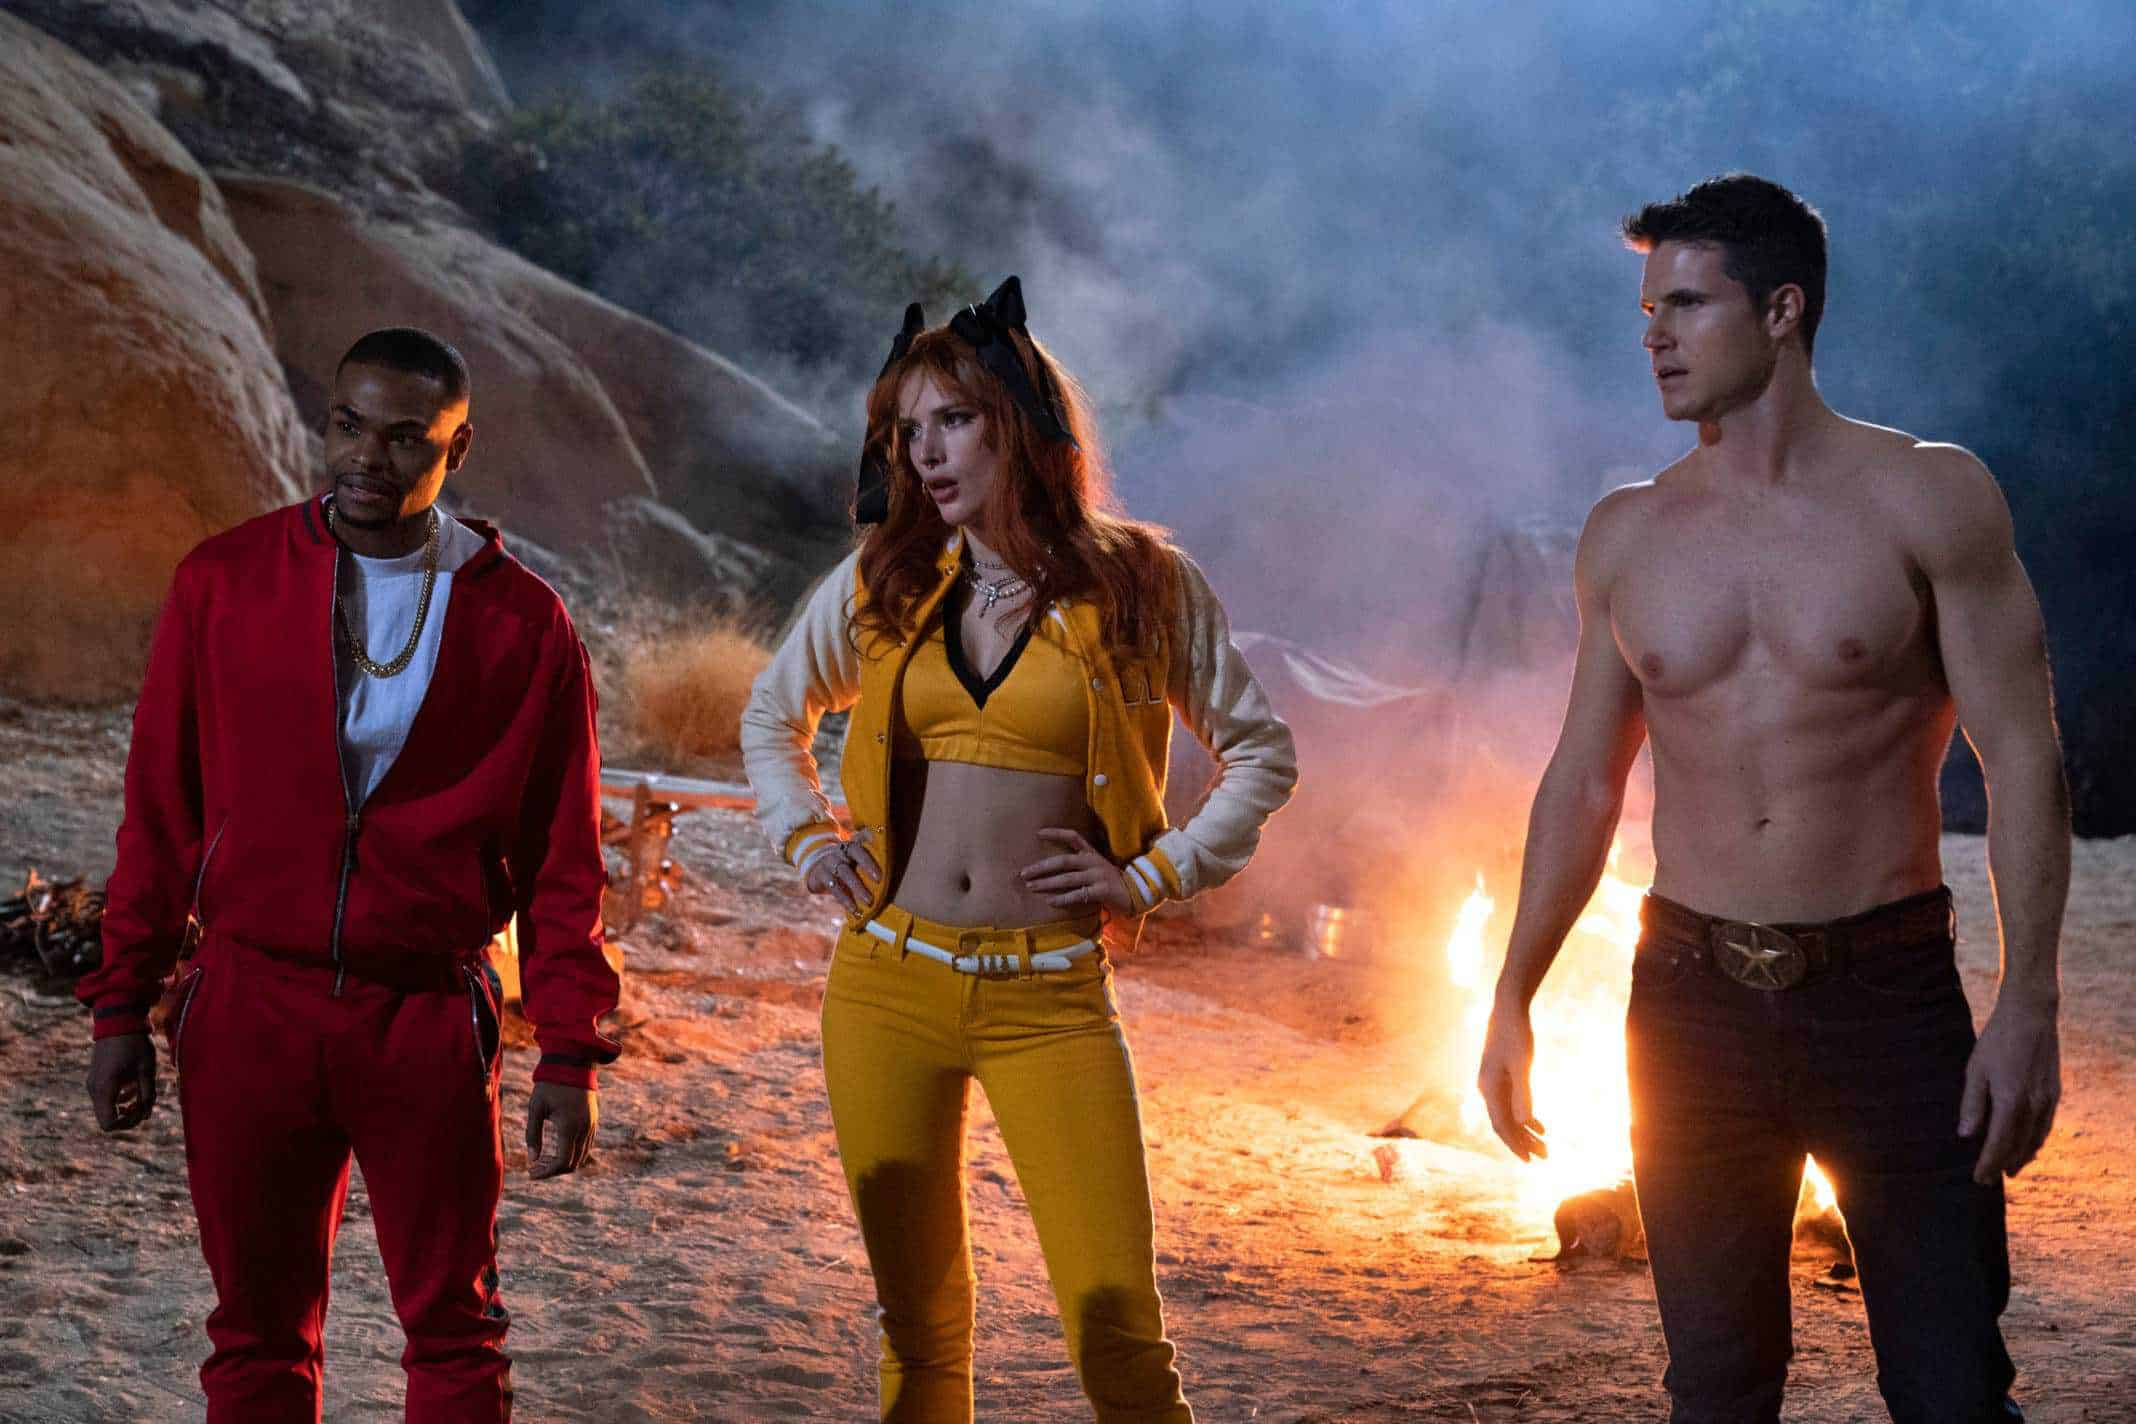 ANDREW BACHELOR as JOHN, BELLA THORNE as ALLISON and ROBBIE AMELL as MAX standing in front of a fire.